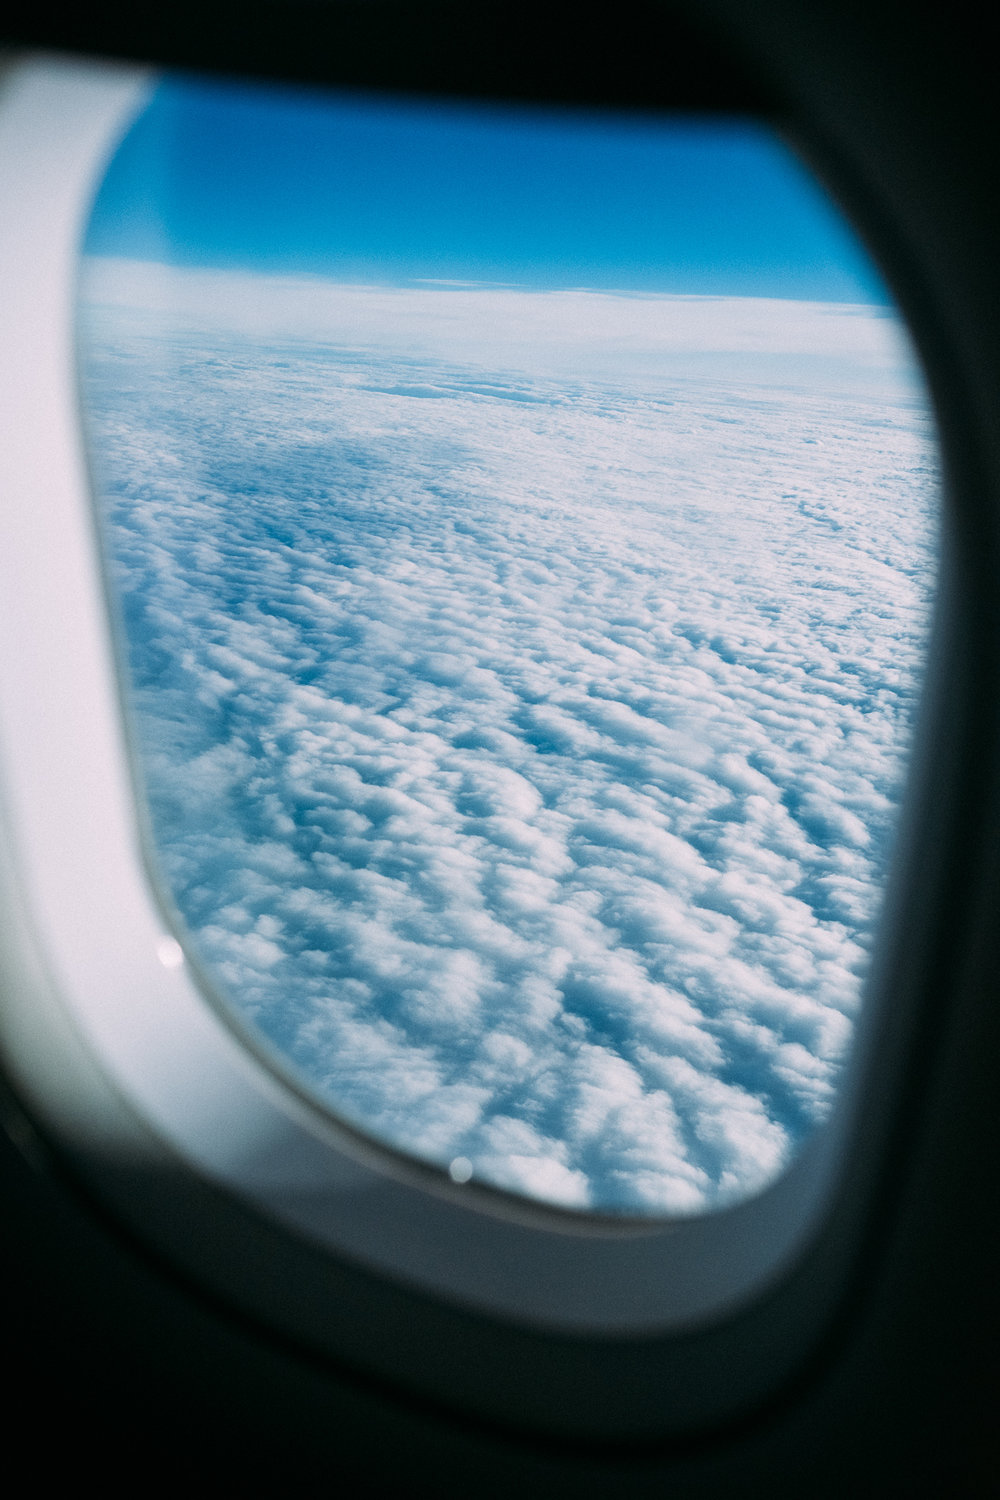 Obligatory airplane window photo.